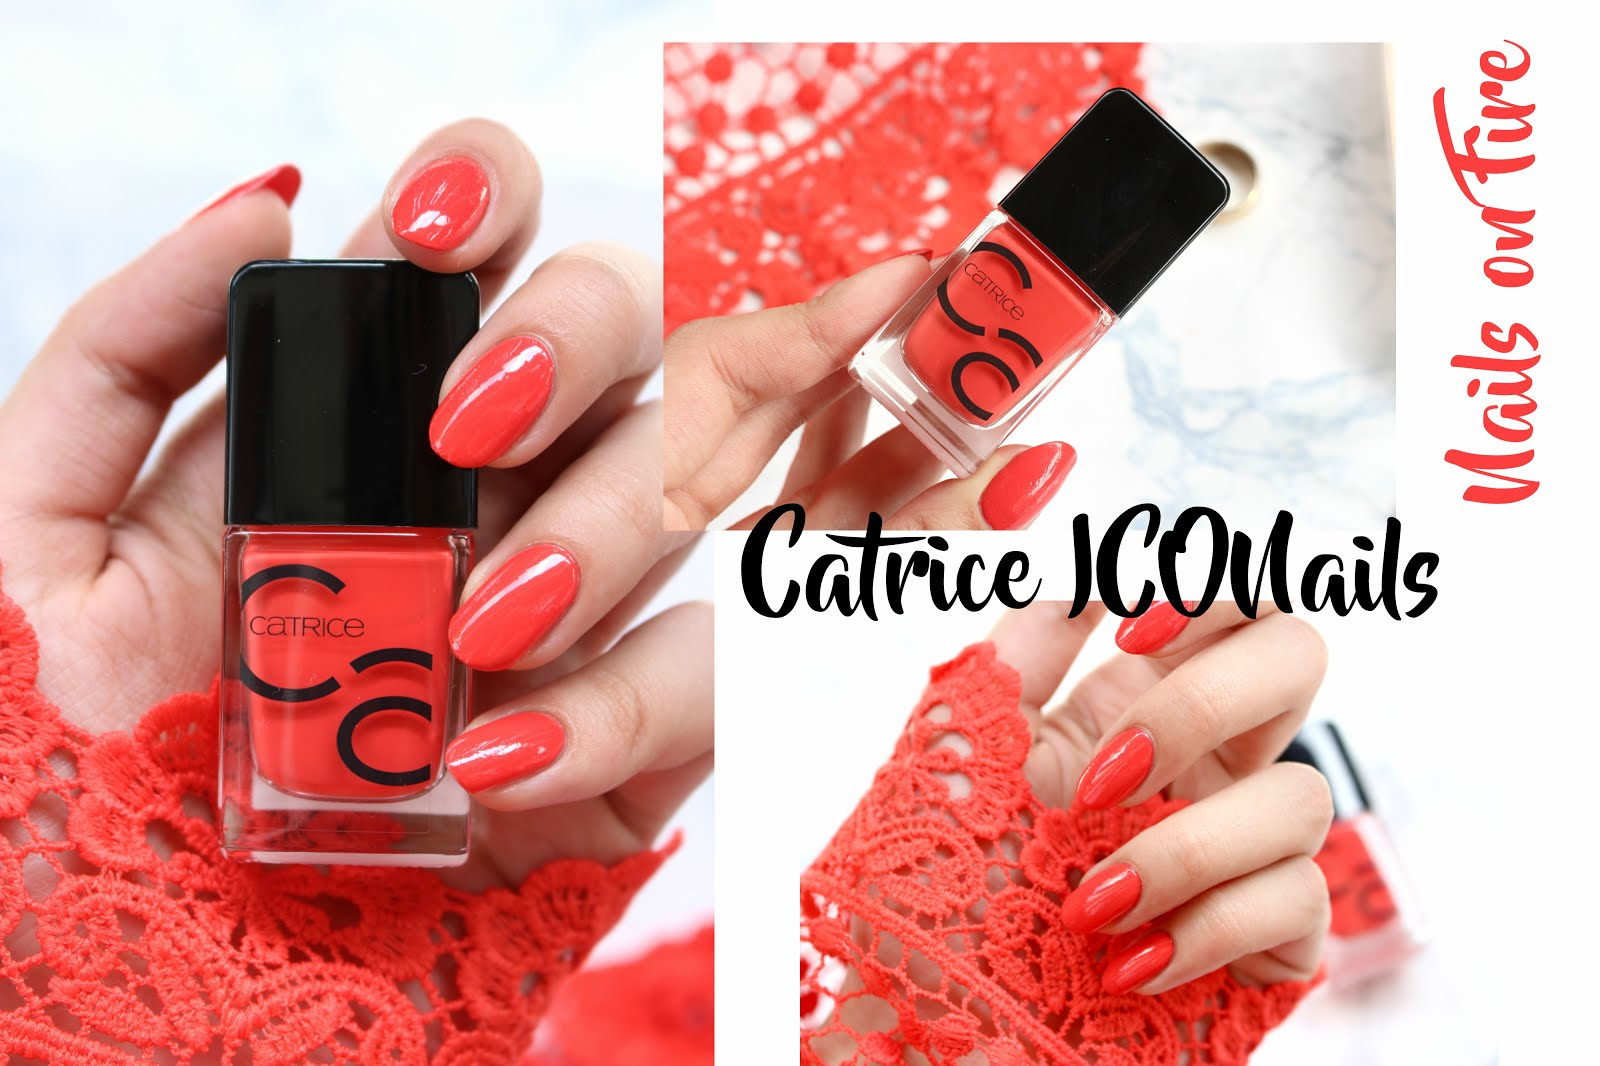 catrice, catrice nagellack, catrice nail polish, catrice iconails,  catrice iconails review, catrice neue nagellacke, catrice new nail polishes, catrice blogger, catrice nails on fire, catrice nails on fire review, nelly ray, nelly ray blog, beauty blog, beautyblog, beauty blogger, beautyblogger